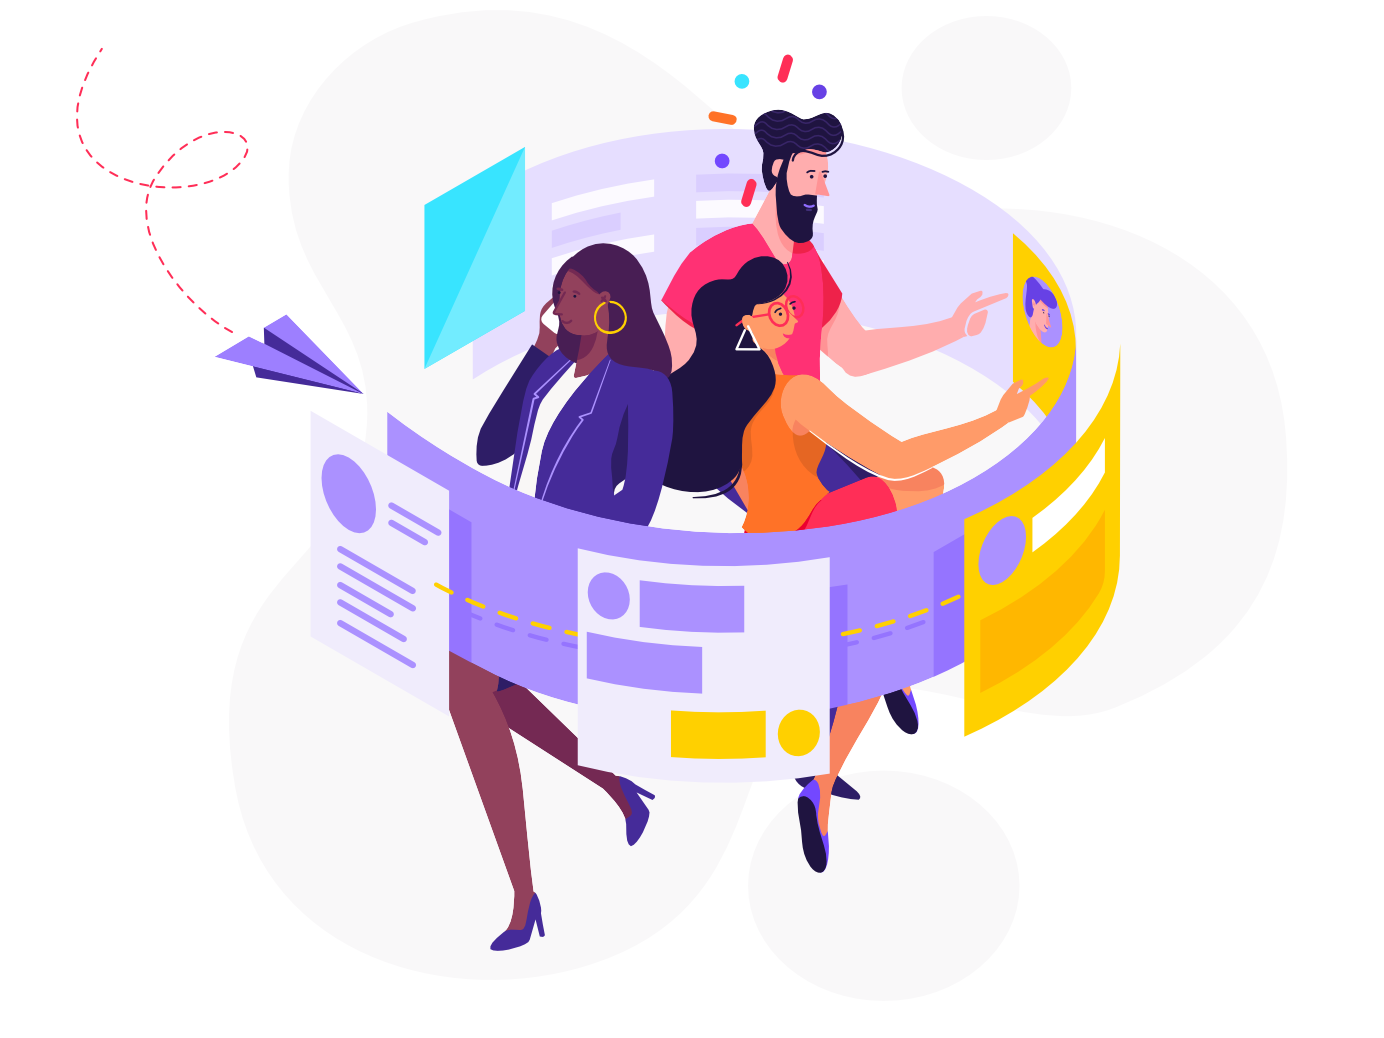 Collaboration isometric hr pattern man woman affinity designer character illustration vector